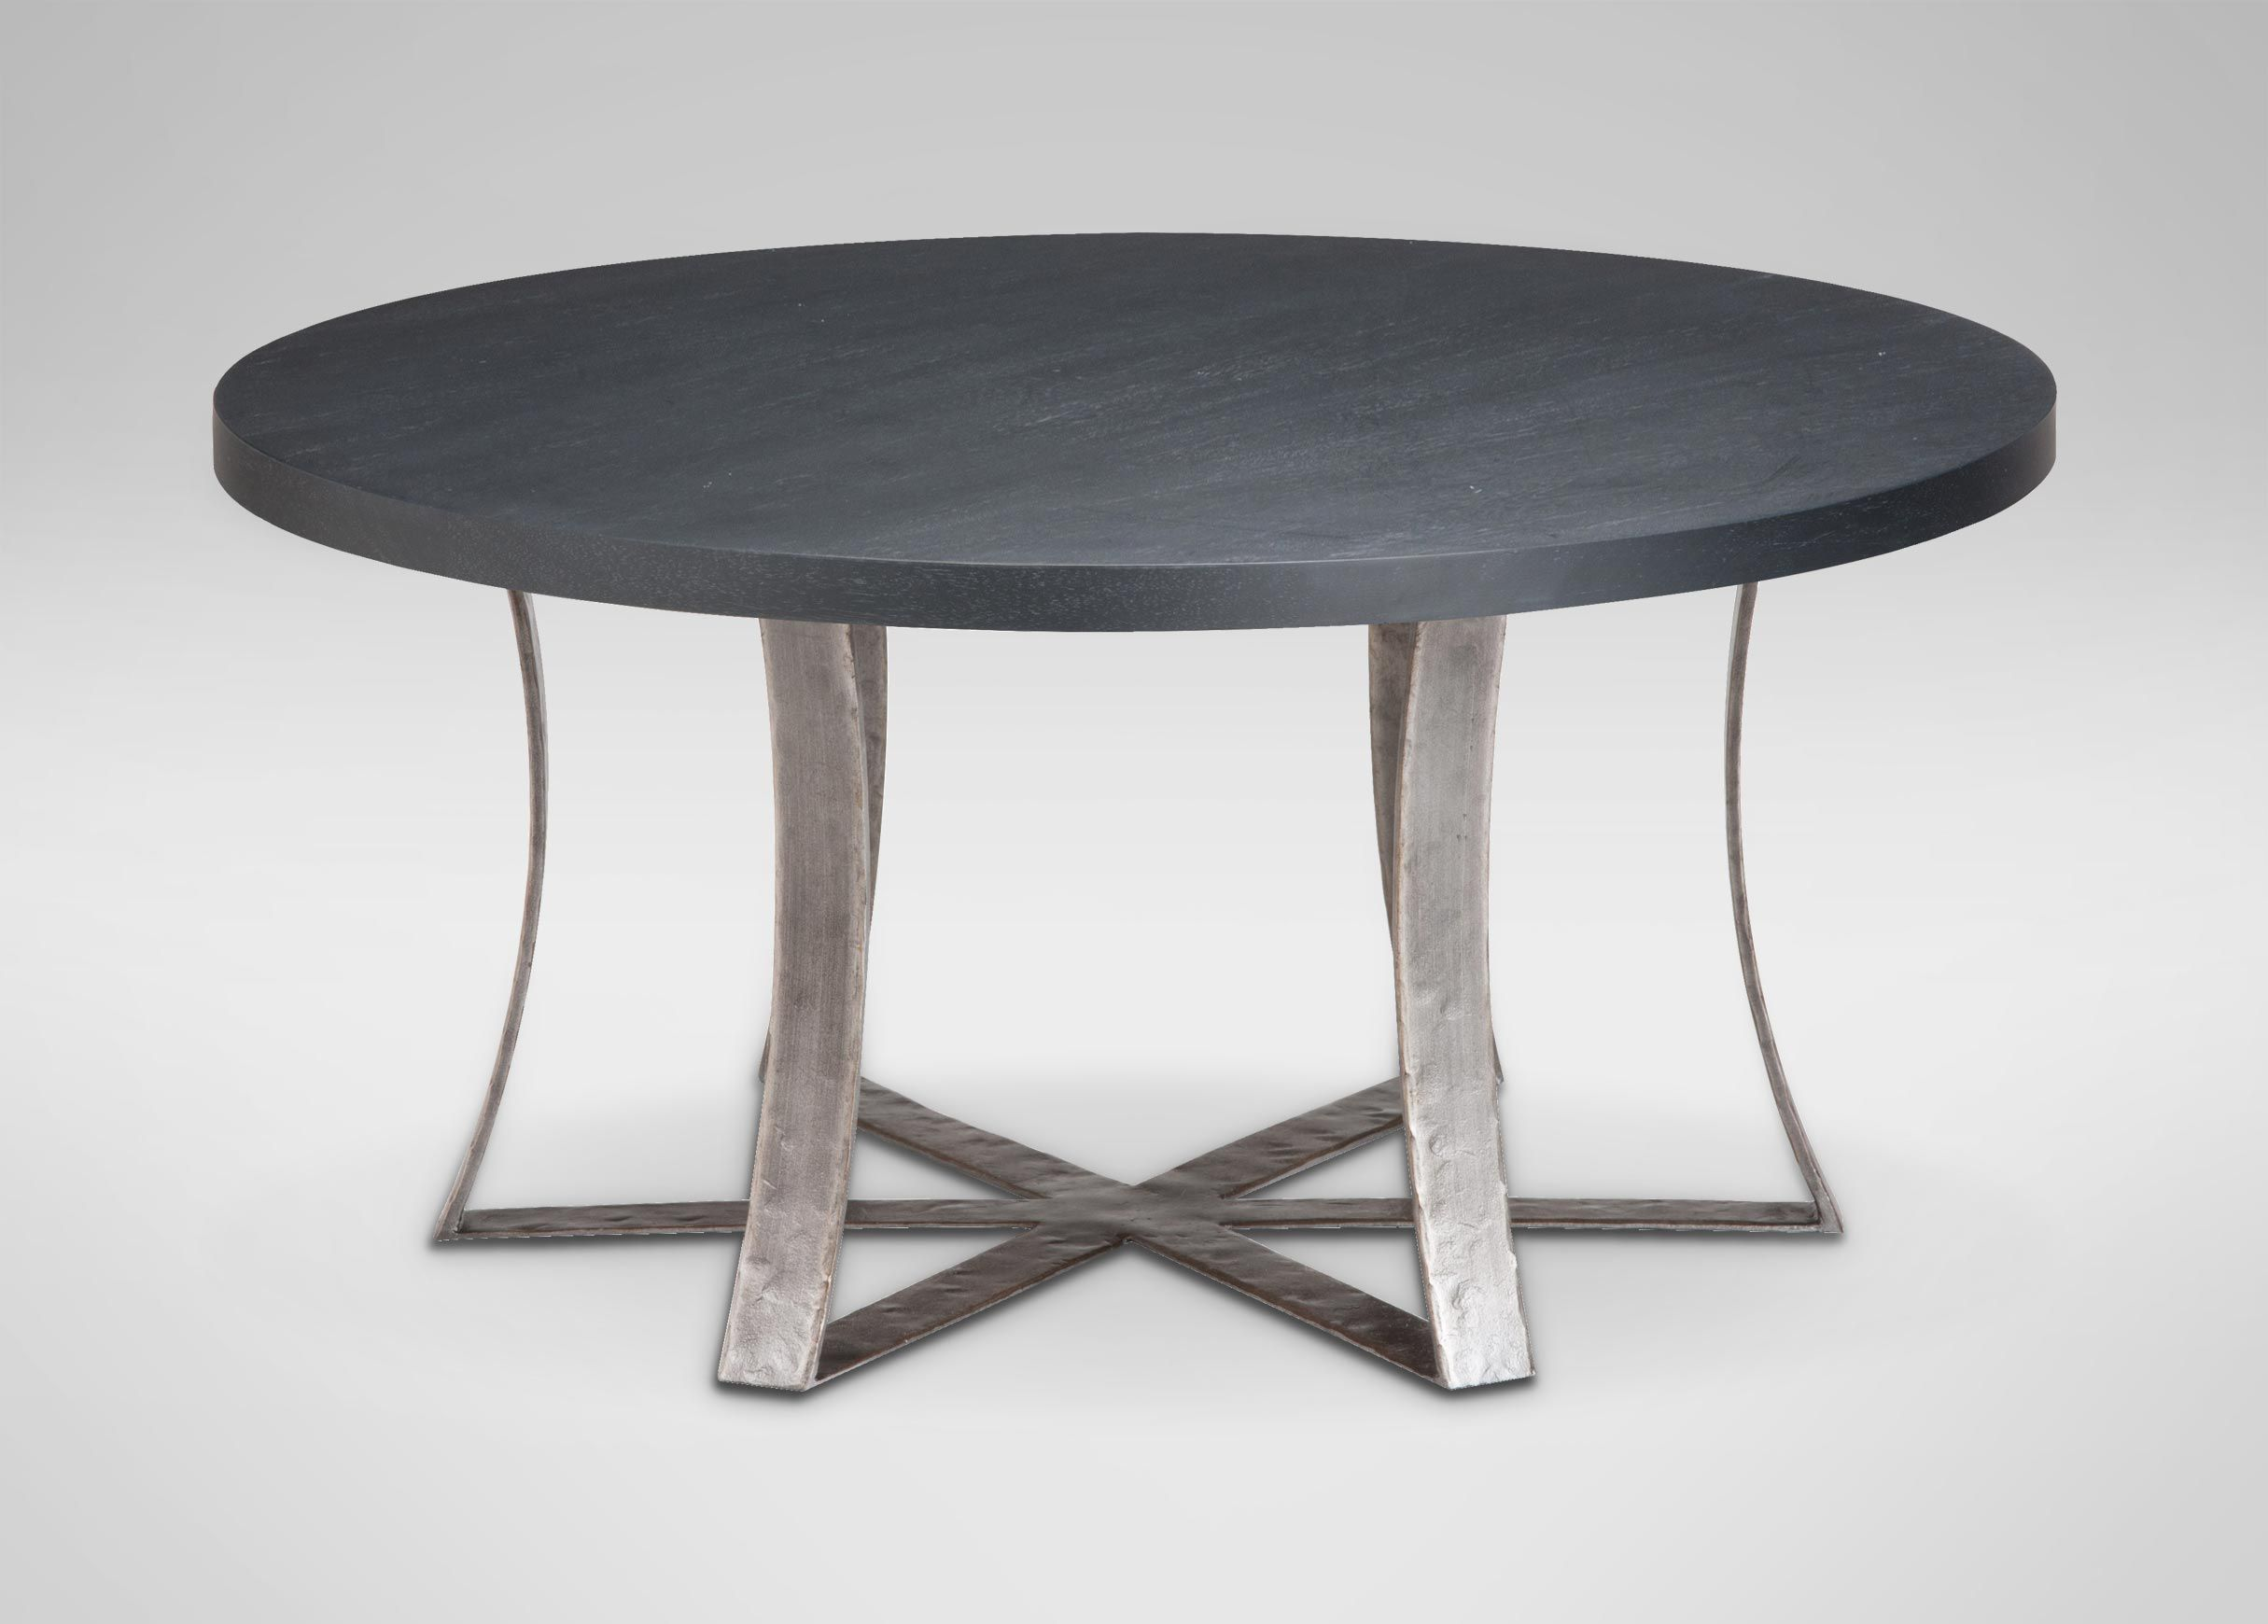 Roswell Round Coffee Table Coffee Tables Round Coffee Table Rustic Side Table Oval Glass Coffee Table [ 1740 x 2430 Pixel ]